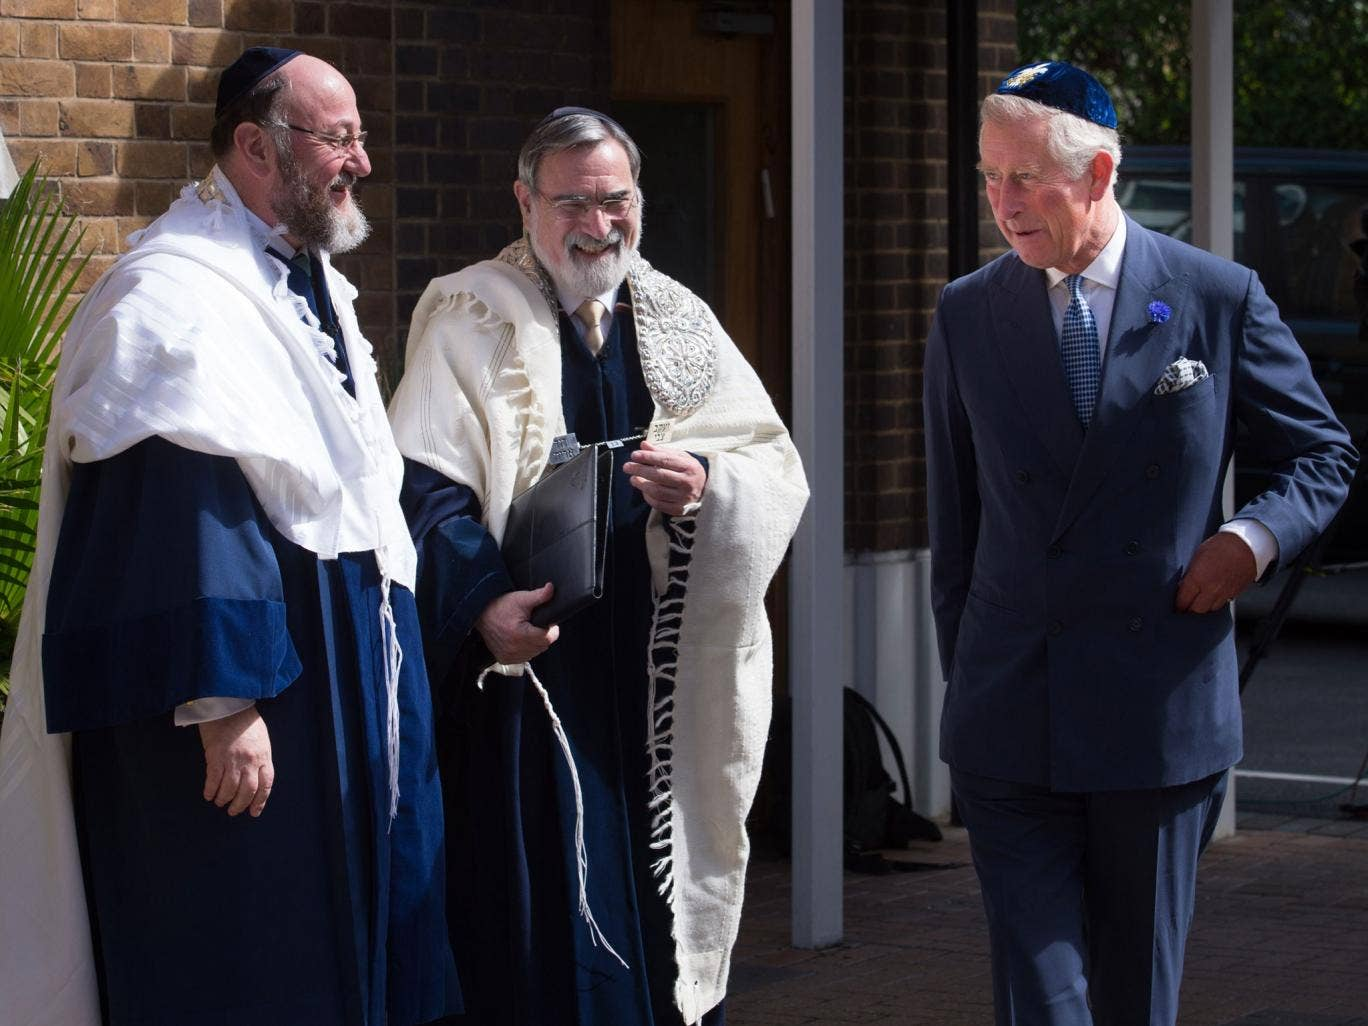 The Prince of Wales with Chief Rabbi Ephraim Mirvis, far left, and his predecessor, Lord Jonathan Sacks, at the induction ceremony